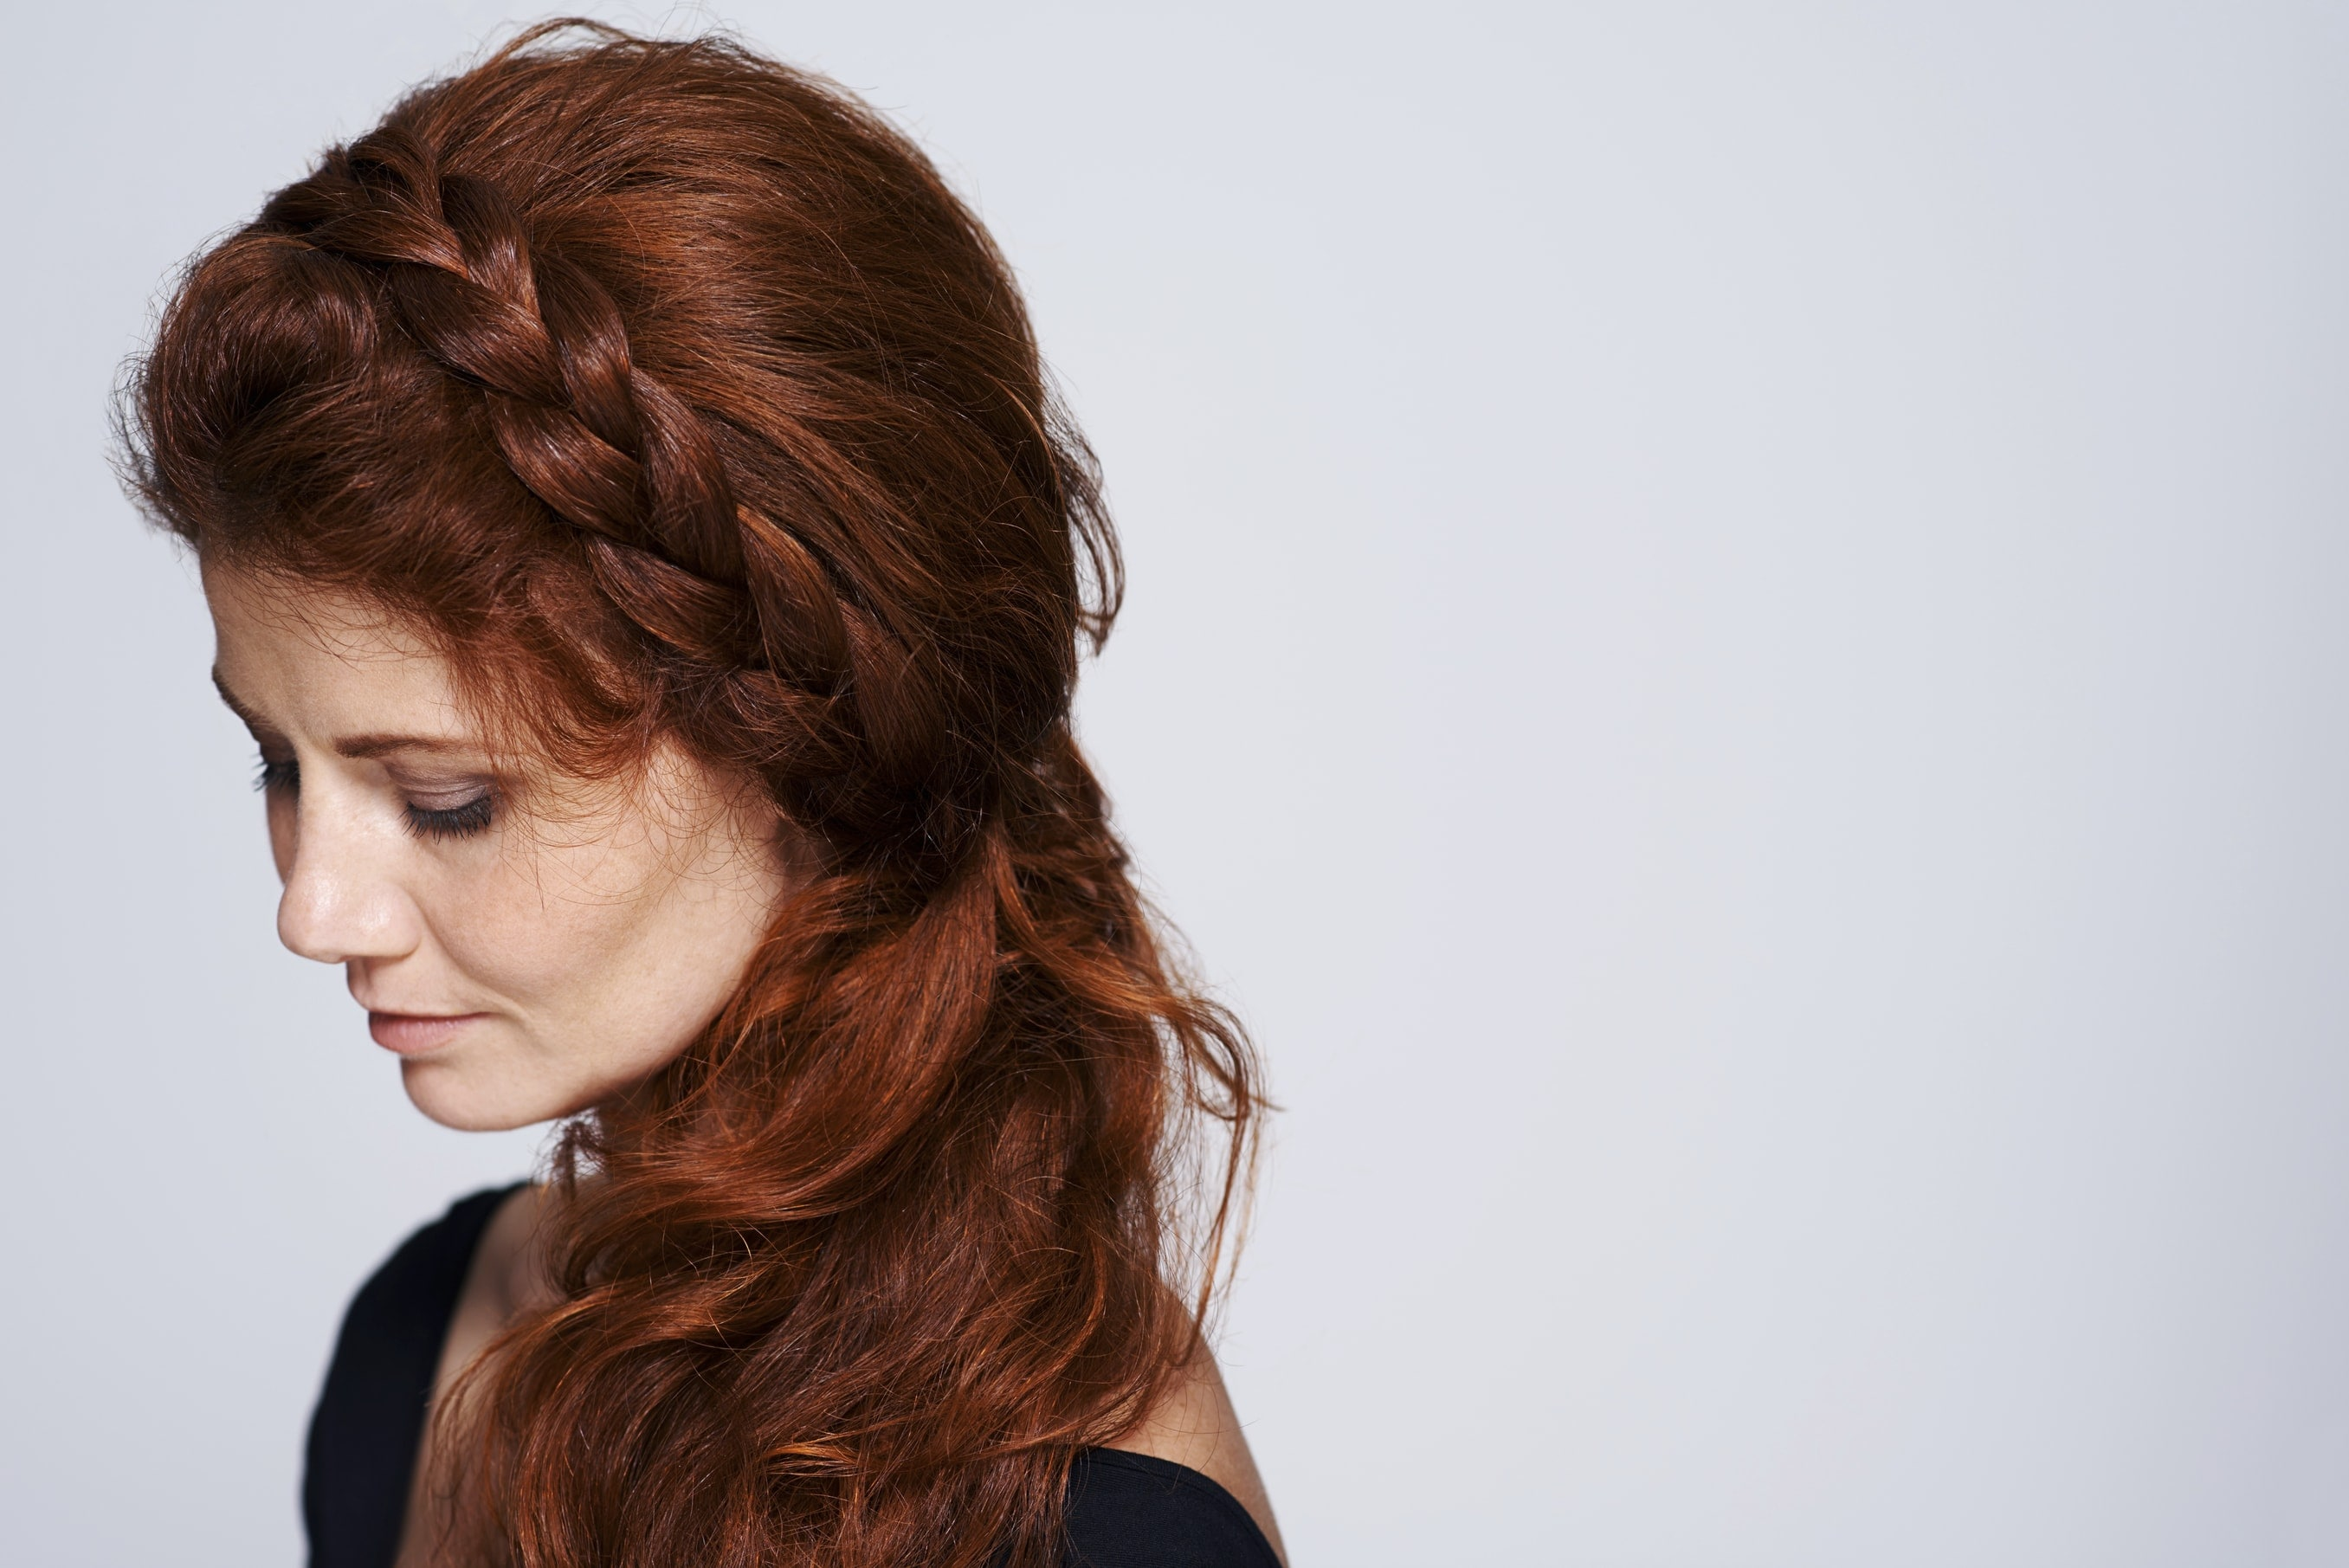 23 Curly Prom Hairstyles To Make It A Night To Remember